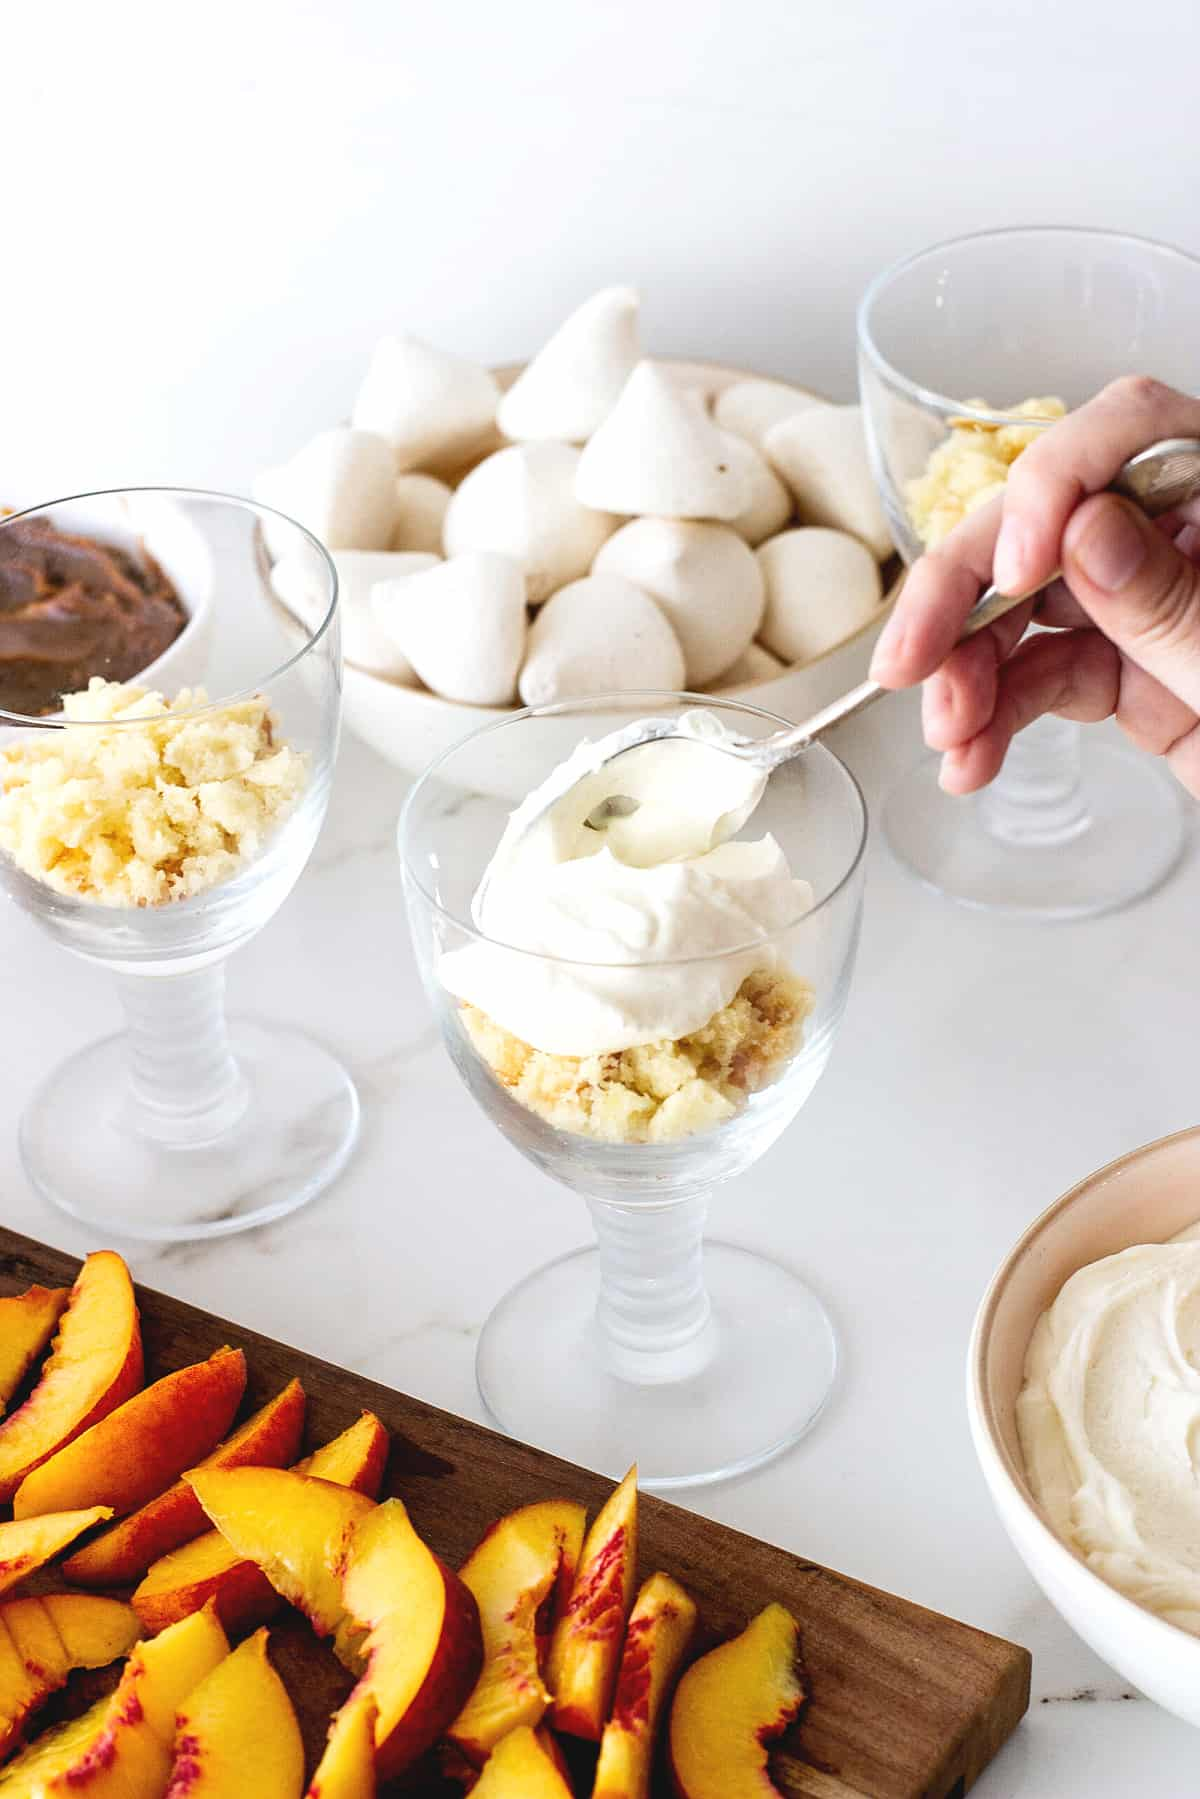 Hand adding cream to stem glass pn white surface; peaches, meringues, and rest of dessert around